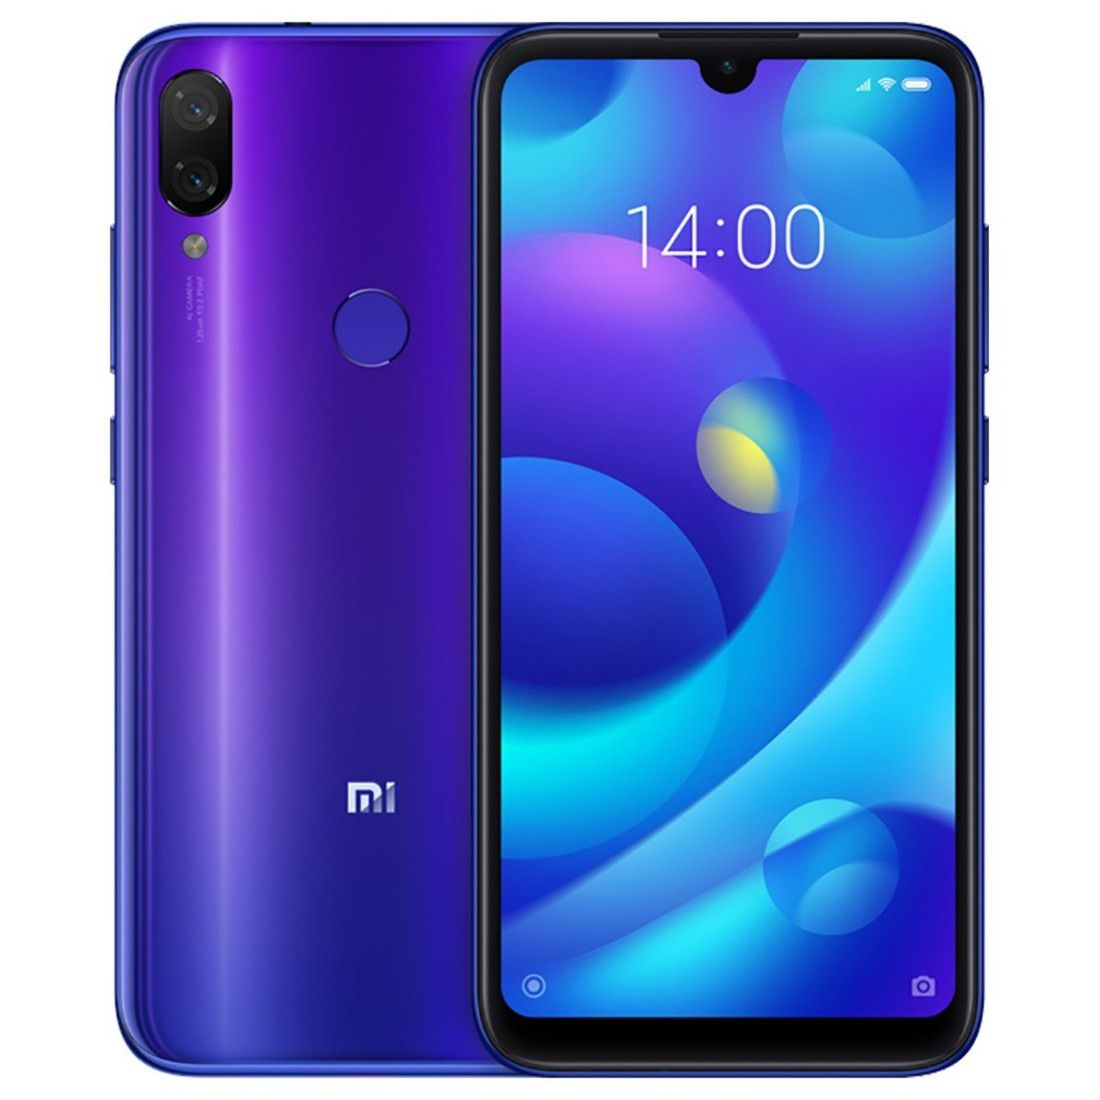 Smartphone Mi Play 4GB Ram Tela 5.84 64GB Camera Dupla 12+12MP - Azul